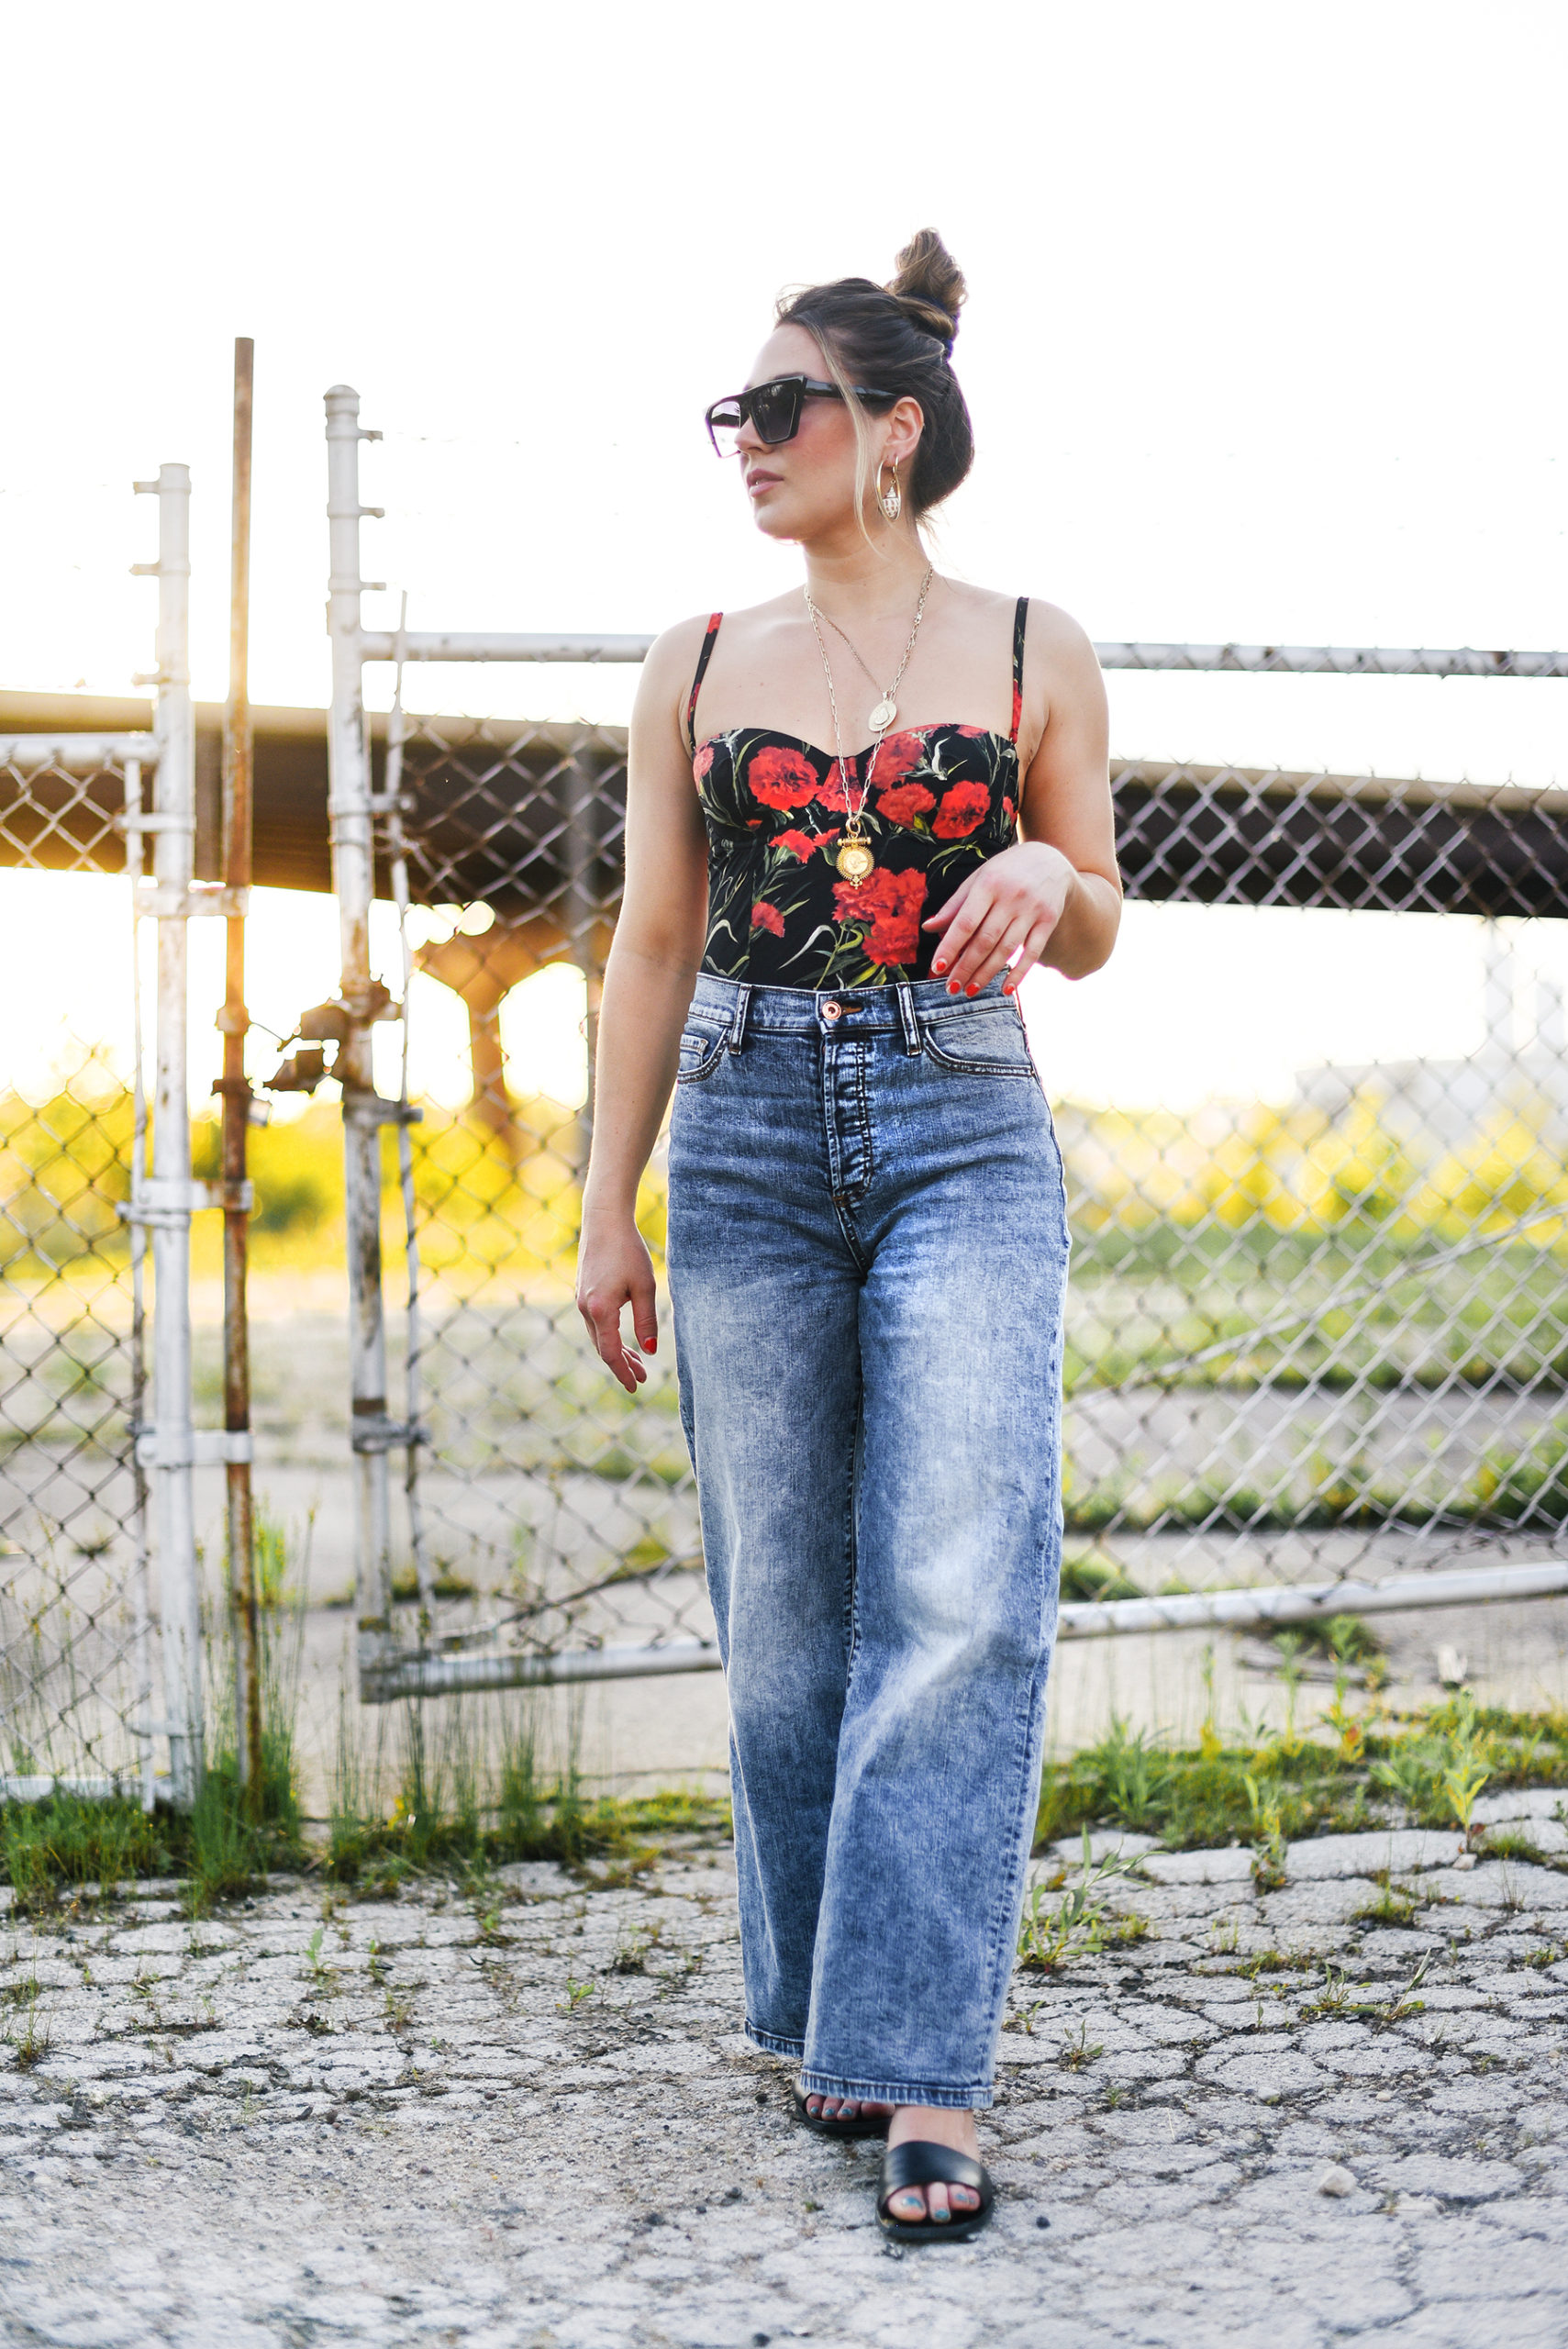 dolce-gabbana-swimsuit-styled-as-bodysuit-with-jeans-outfit-girl-street-style-summer-fashion-outfit-idea